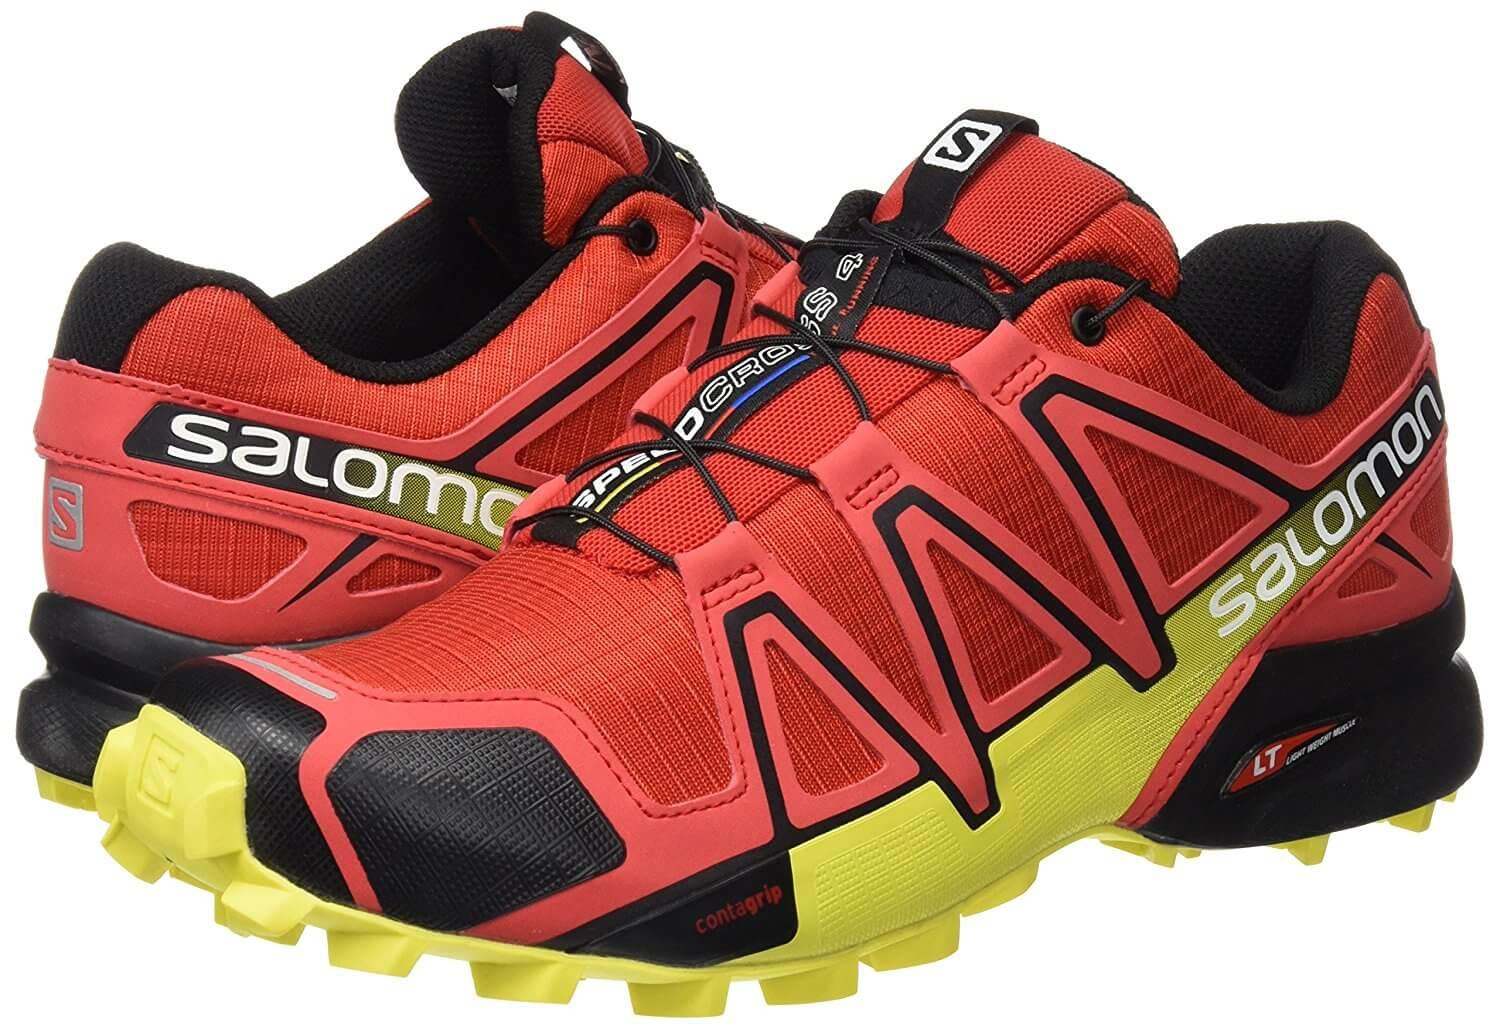 Salomon Speedcross 4 5